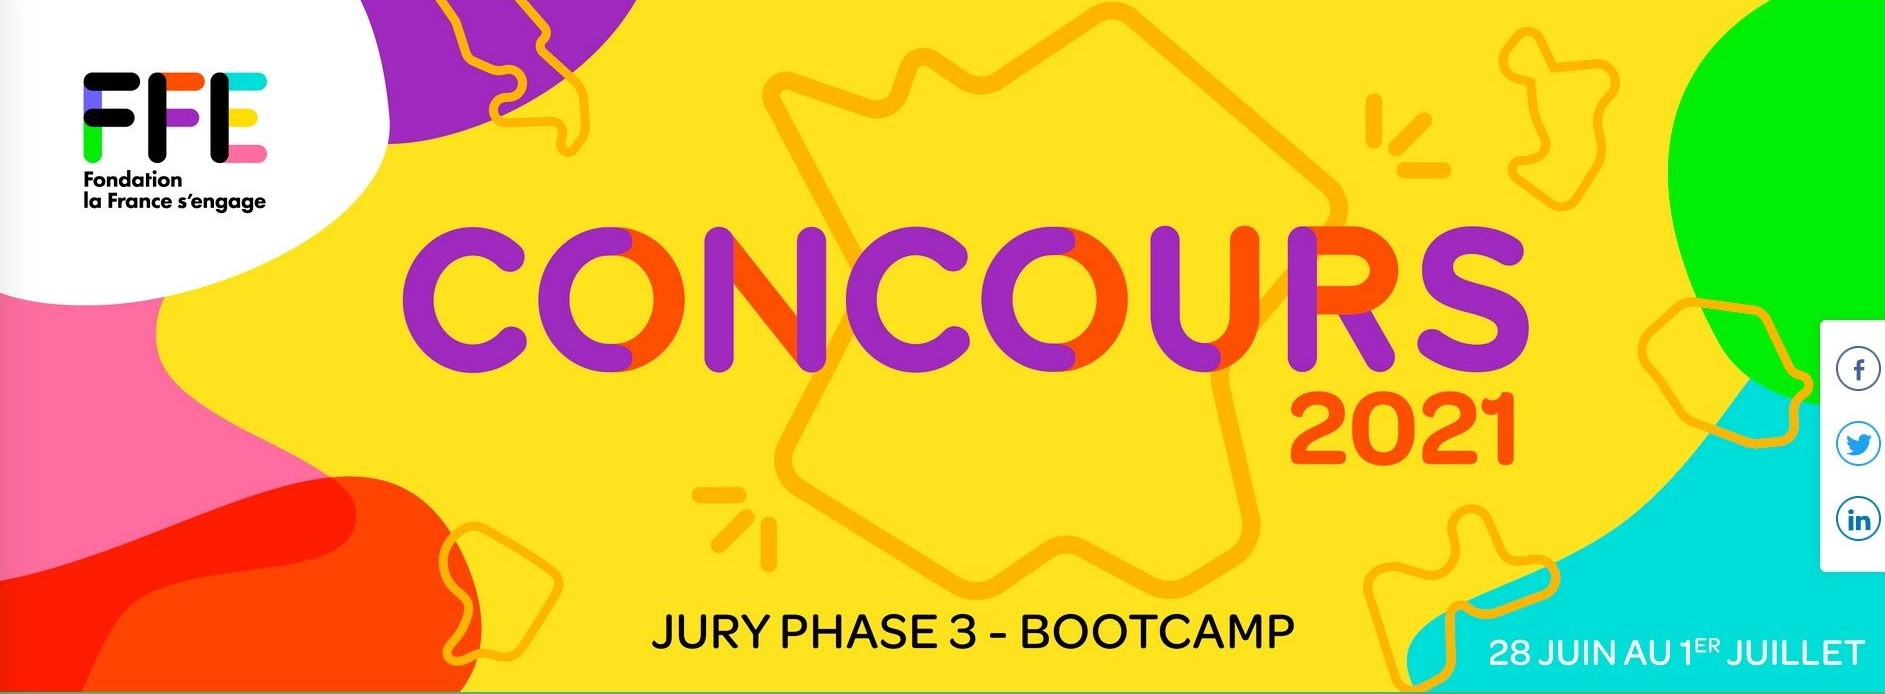 Coucours FFE 2021